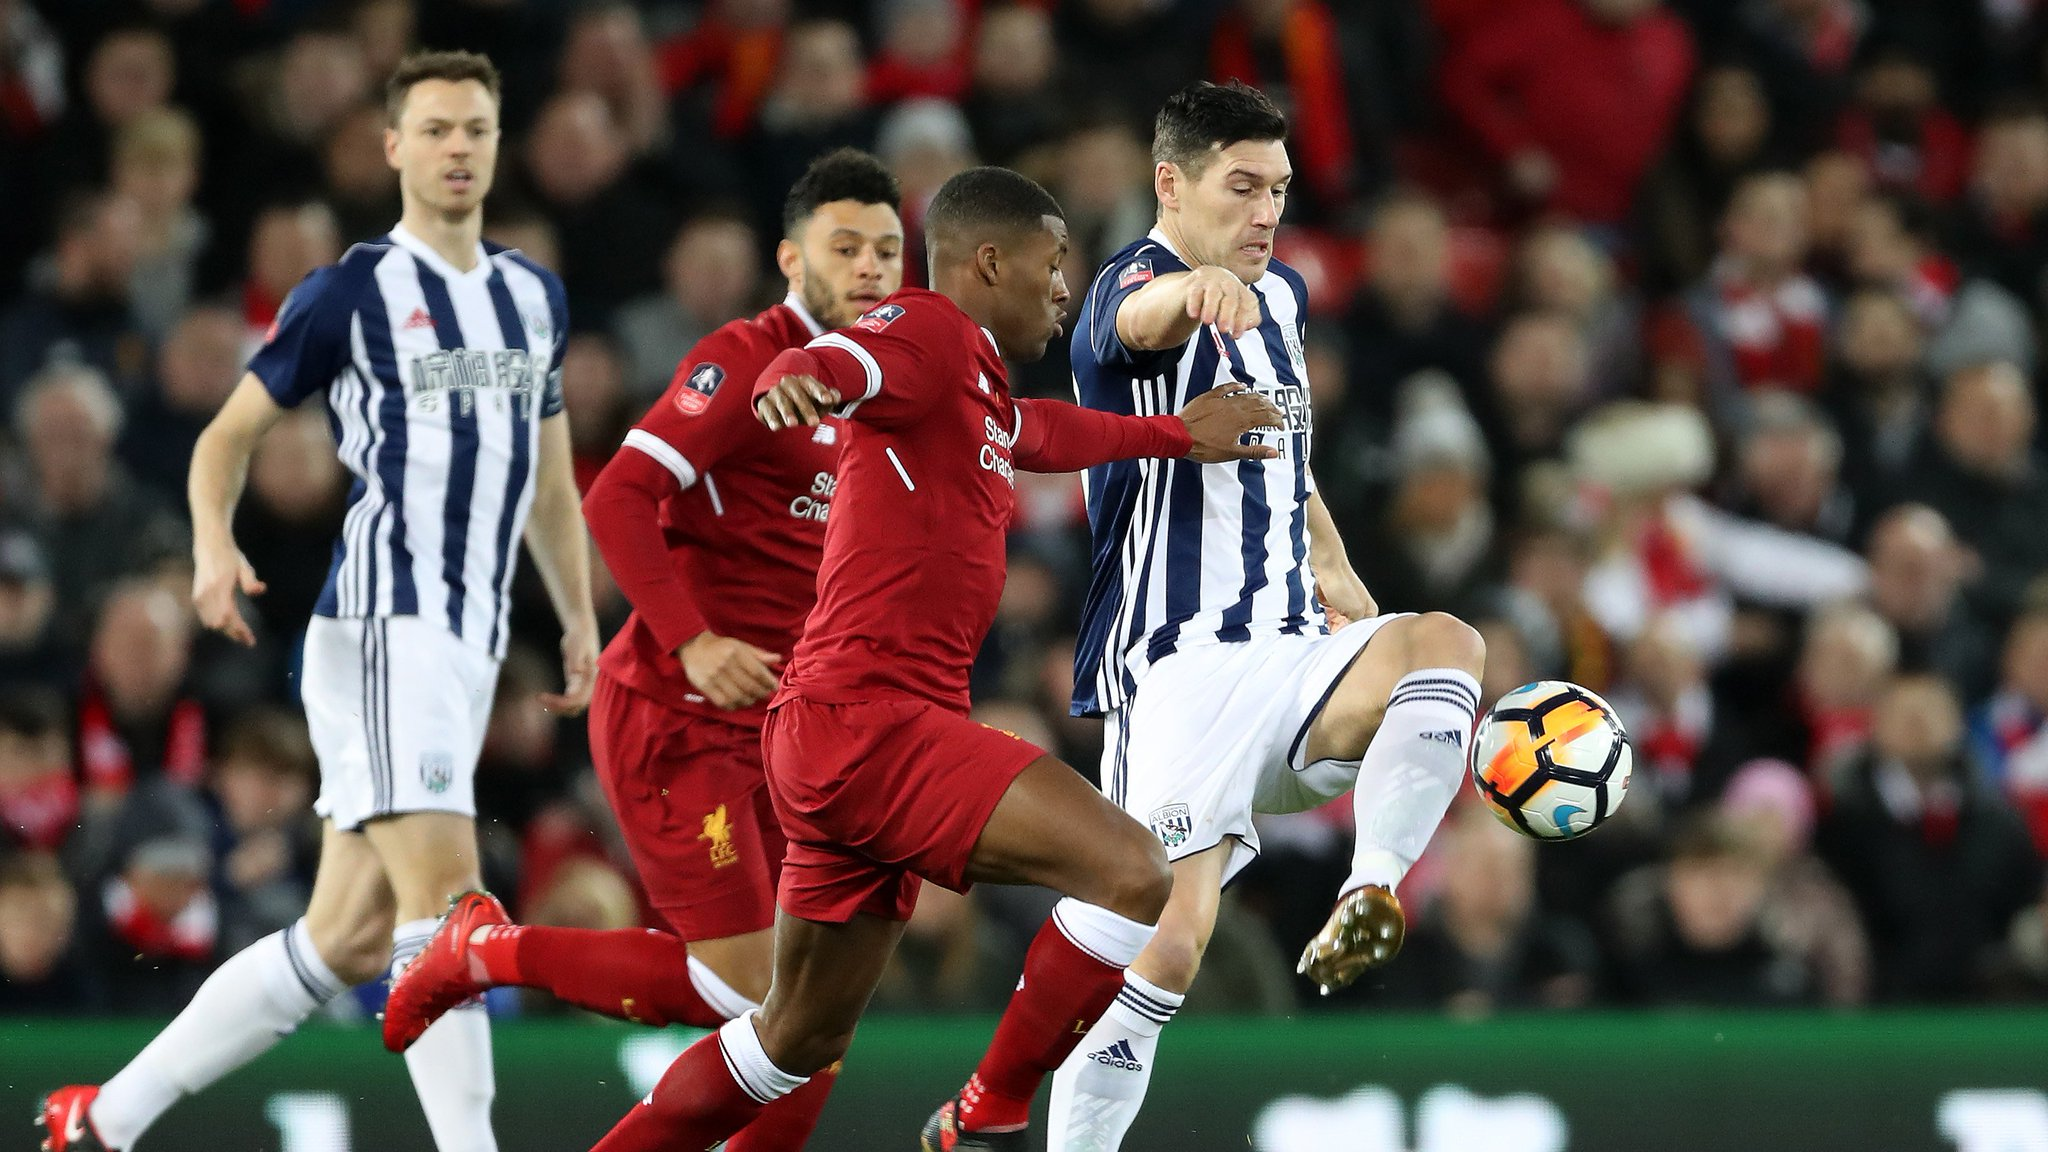 Liverpool vs West Brom 2-3 Highlights